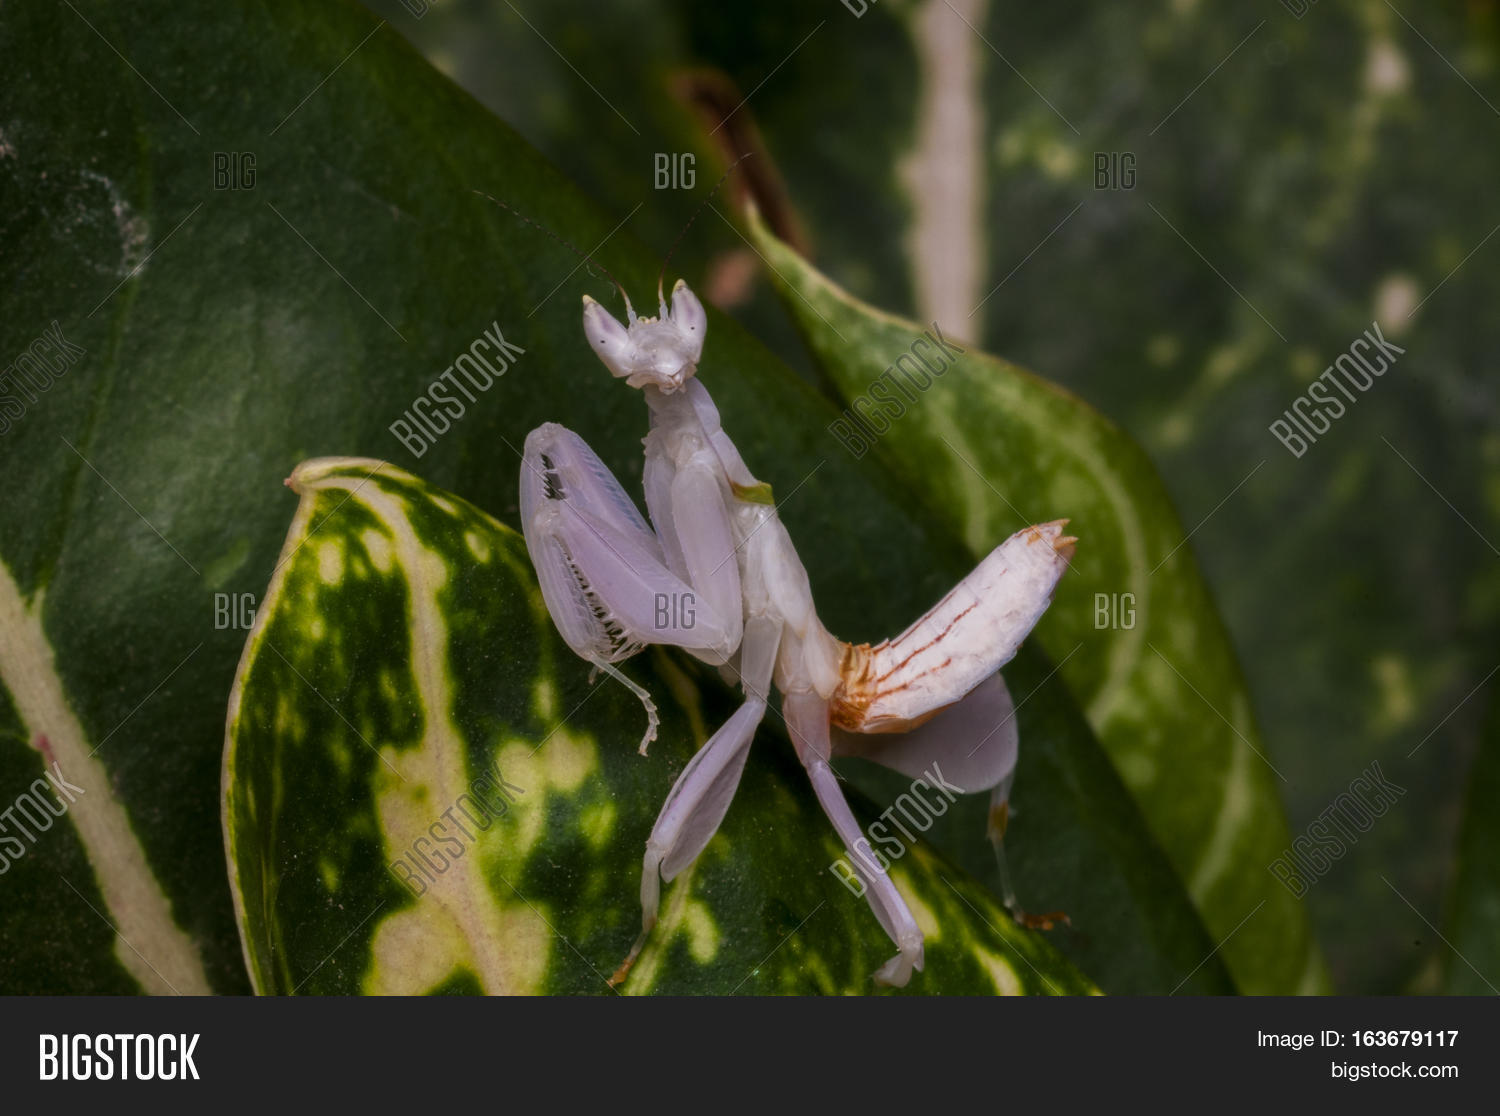 Mantispink Orchid Image Photo Free Trial Bigstock